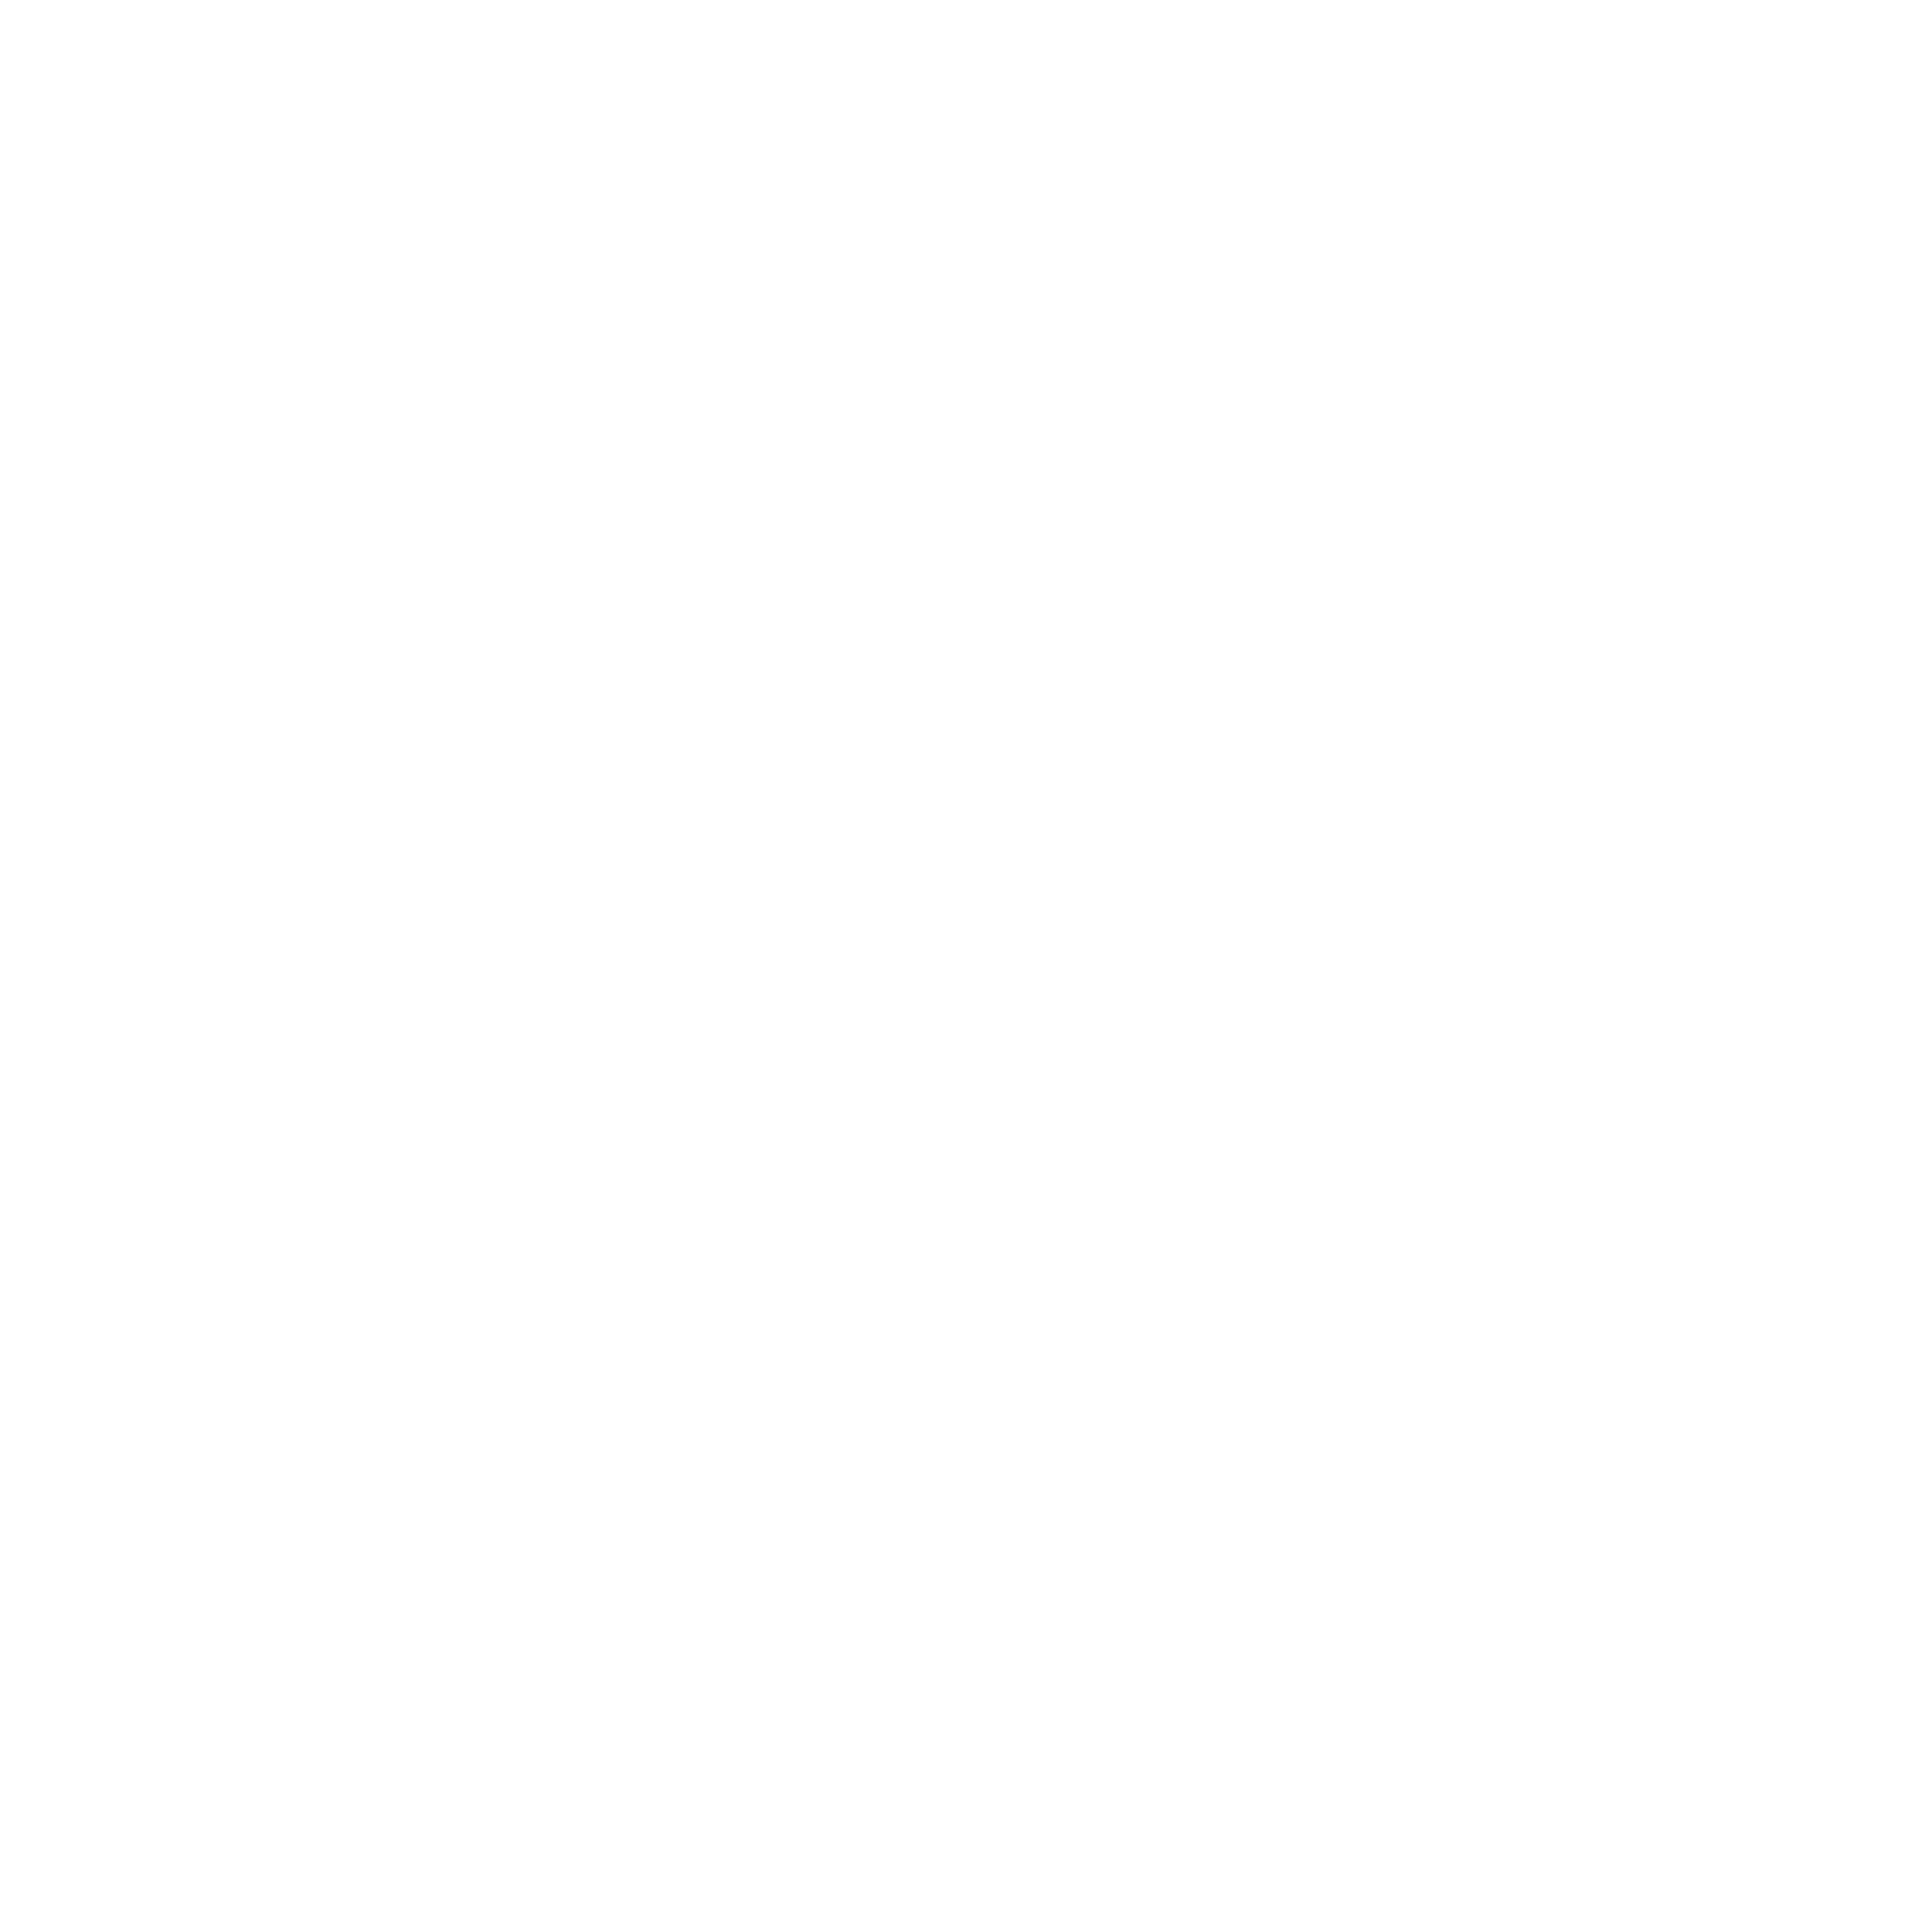 Forklift fleet management